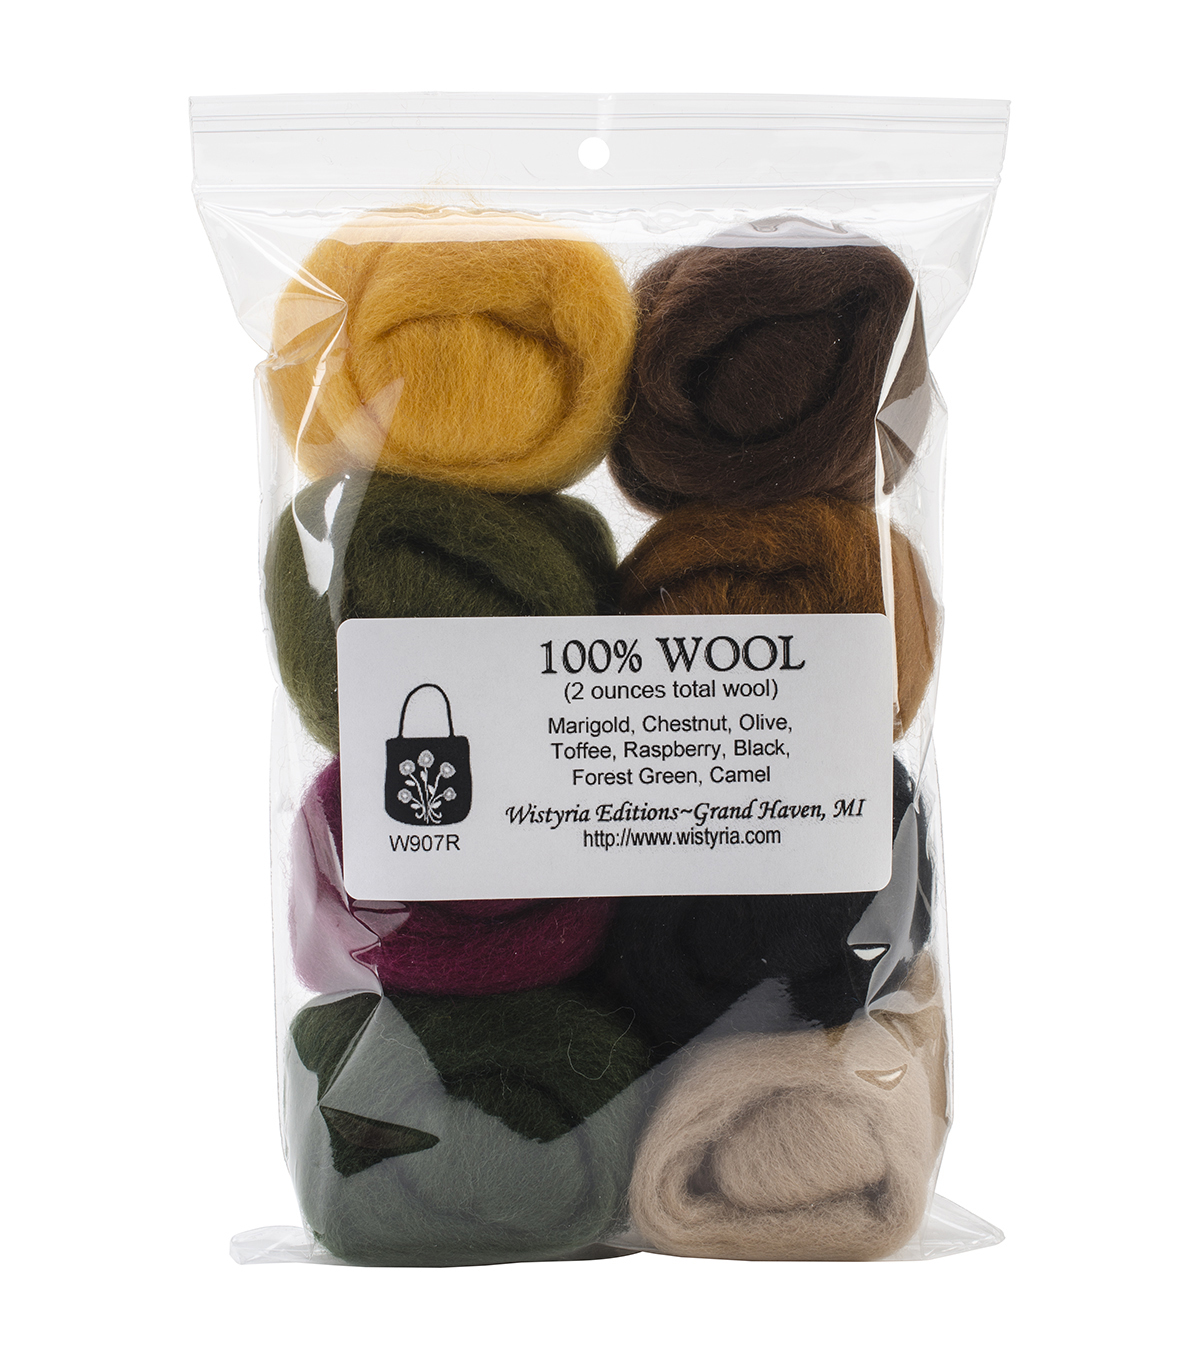 Wistyria Editions The Bouquet Wool Roving Yarn, Falling Leaves